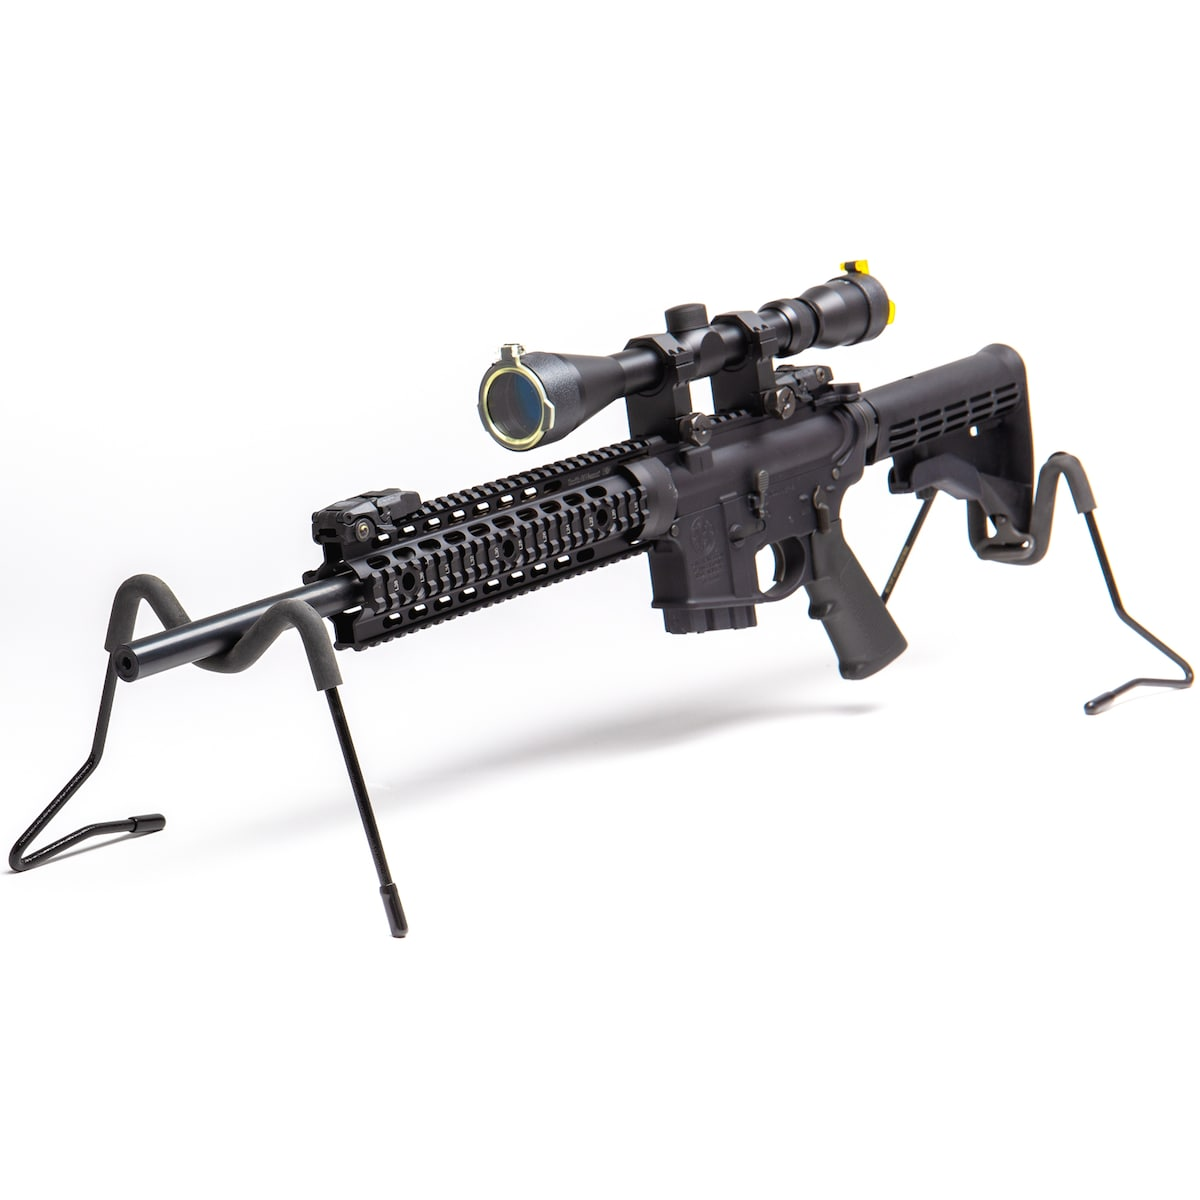 SMITH & WESSON M&P-15FT